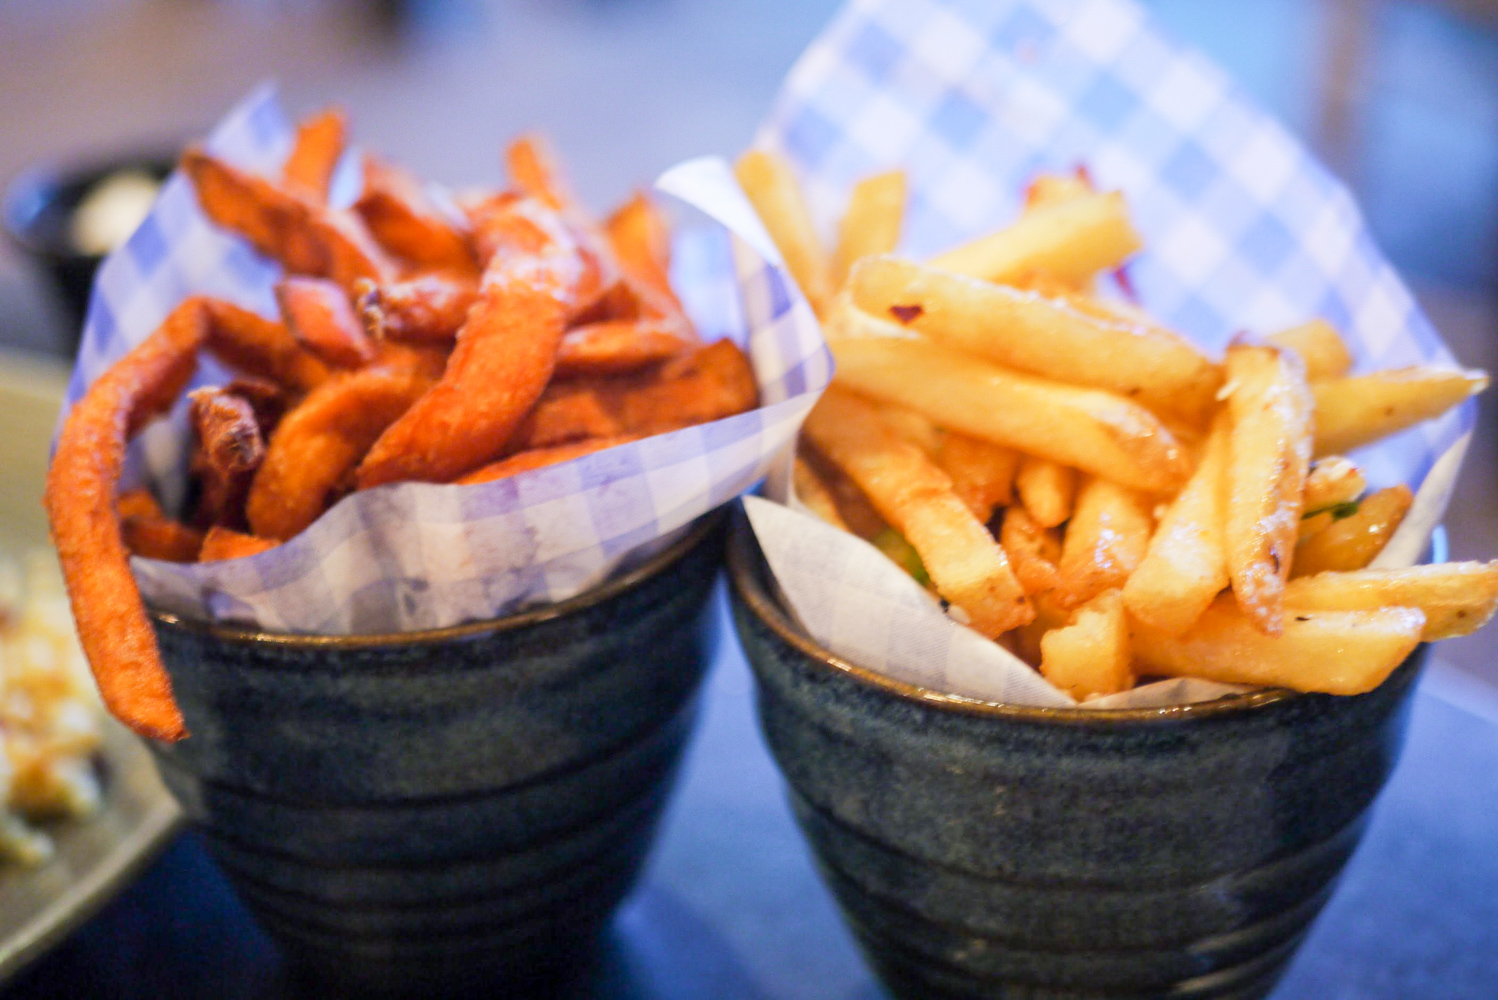 Sweet Potato Fries and Salt and Pepper Chips (each £4.25)